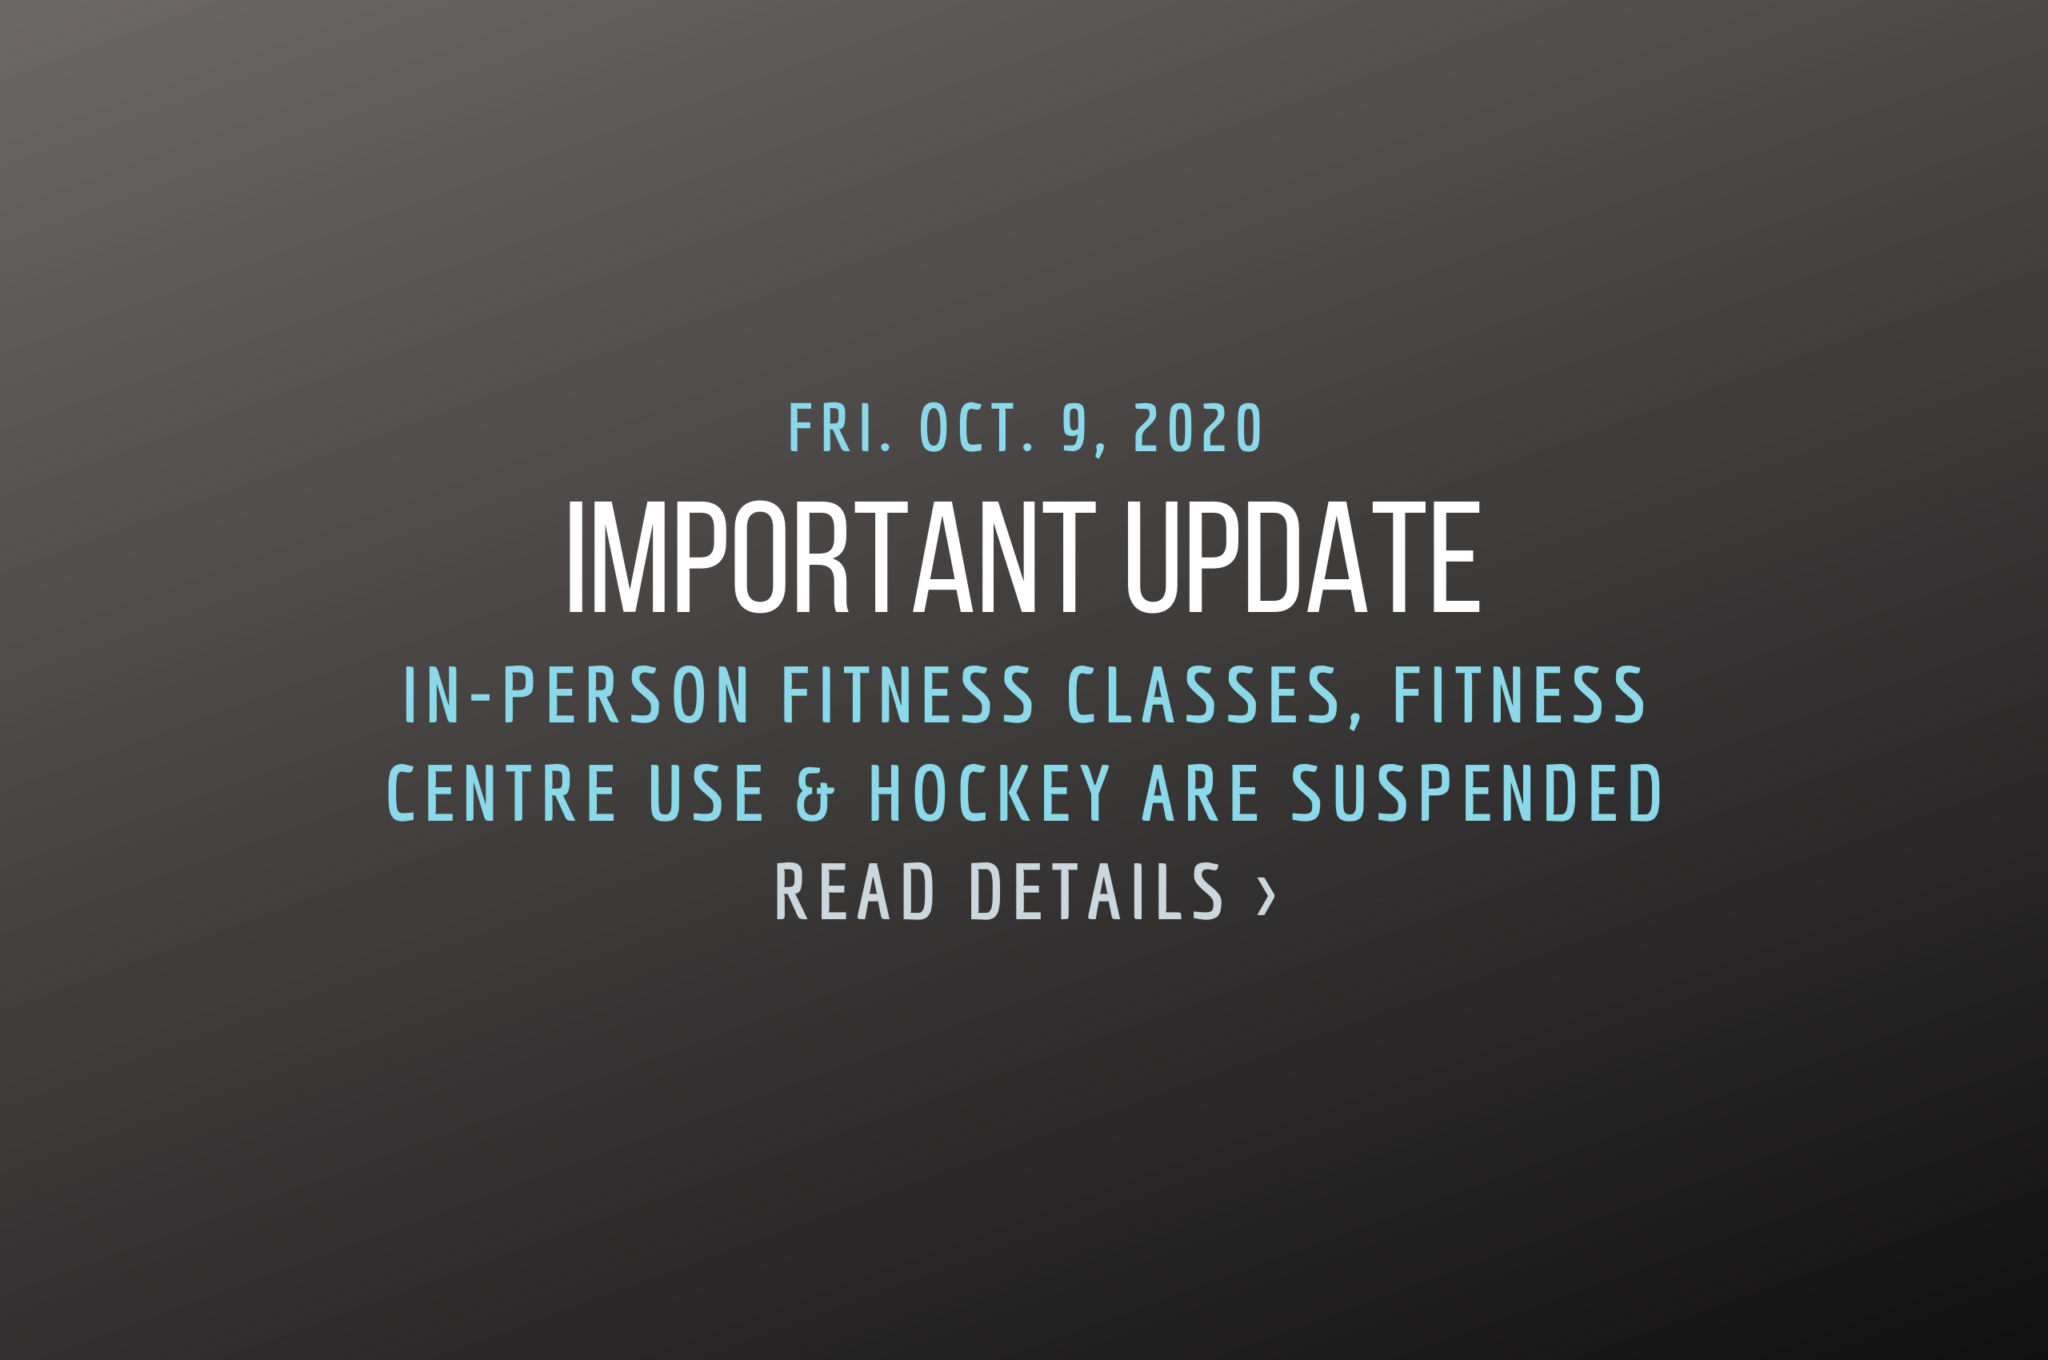 Oct 9 important update: in person classes and adult hockey are suspended. read details.